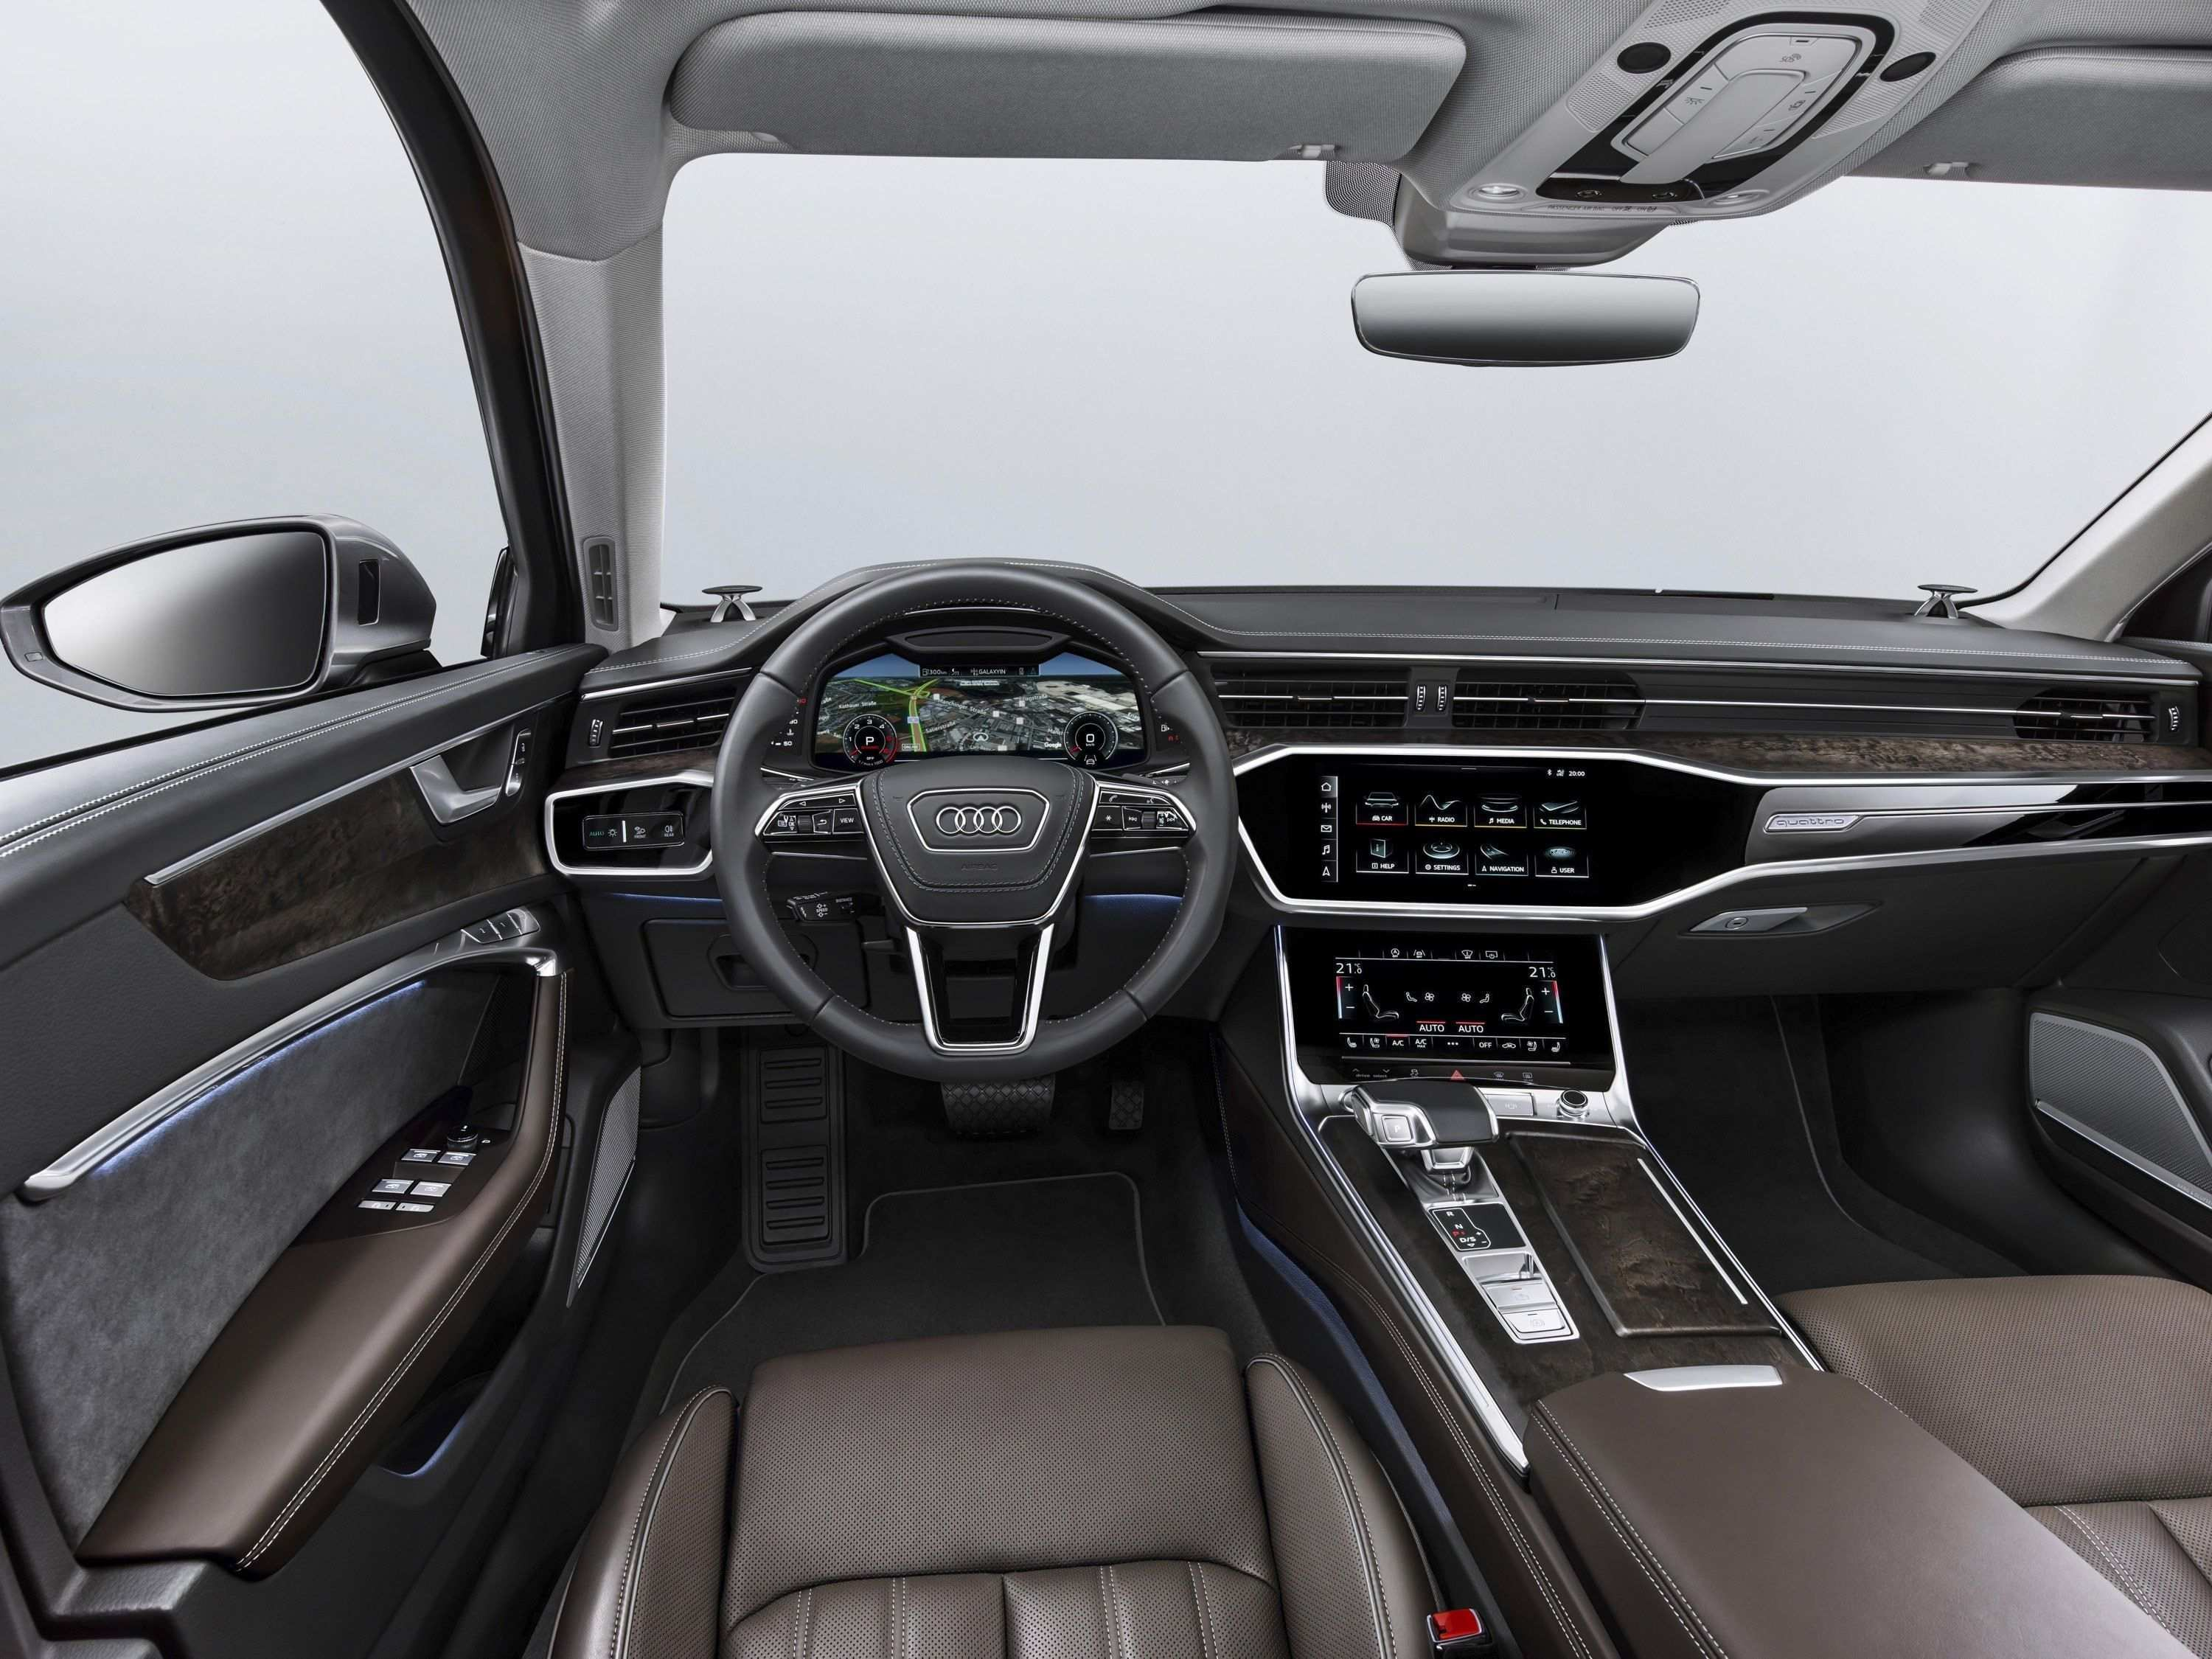 63 Concept of New Audi A6 2019 Interior Spy Shoot Redesign with New Audi A6 2019 Interior Spy Shoot